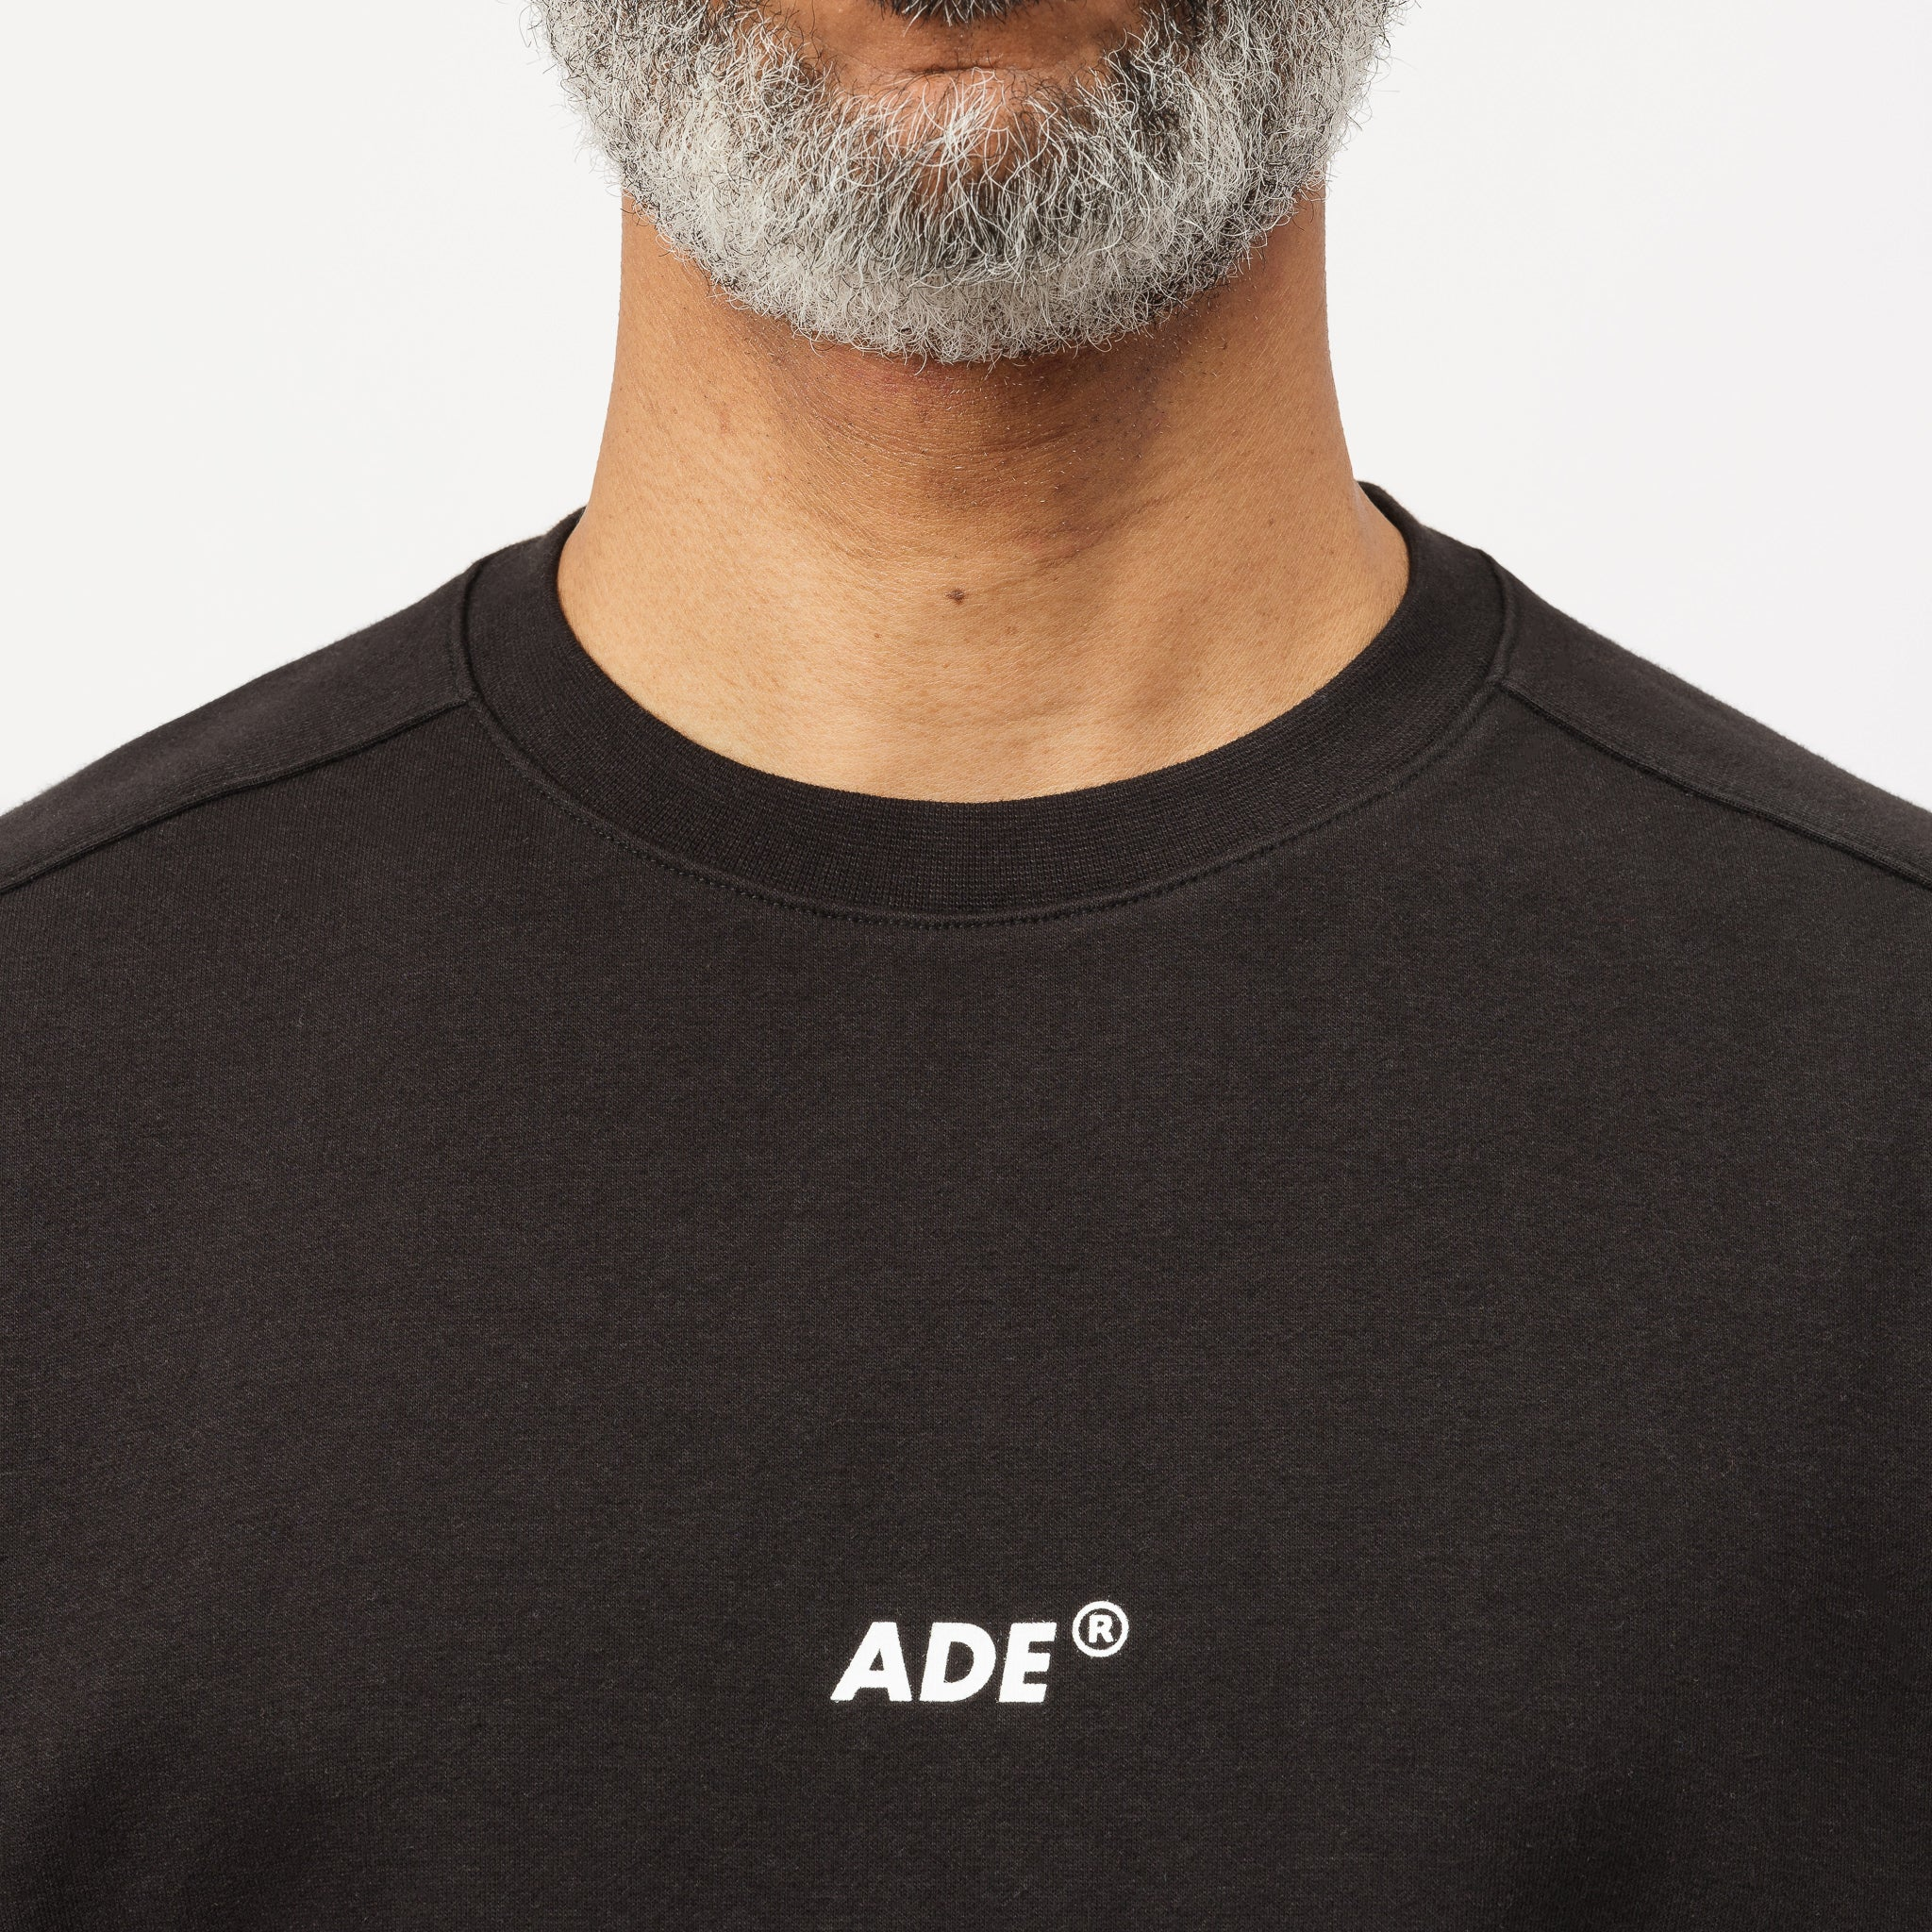 Ade T-Shirt in Black